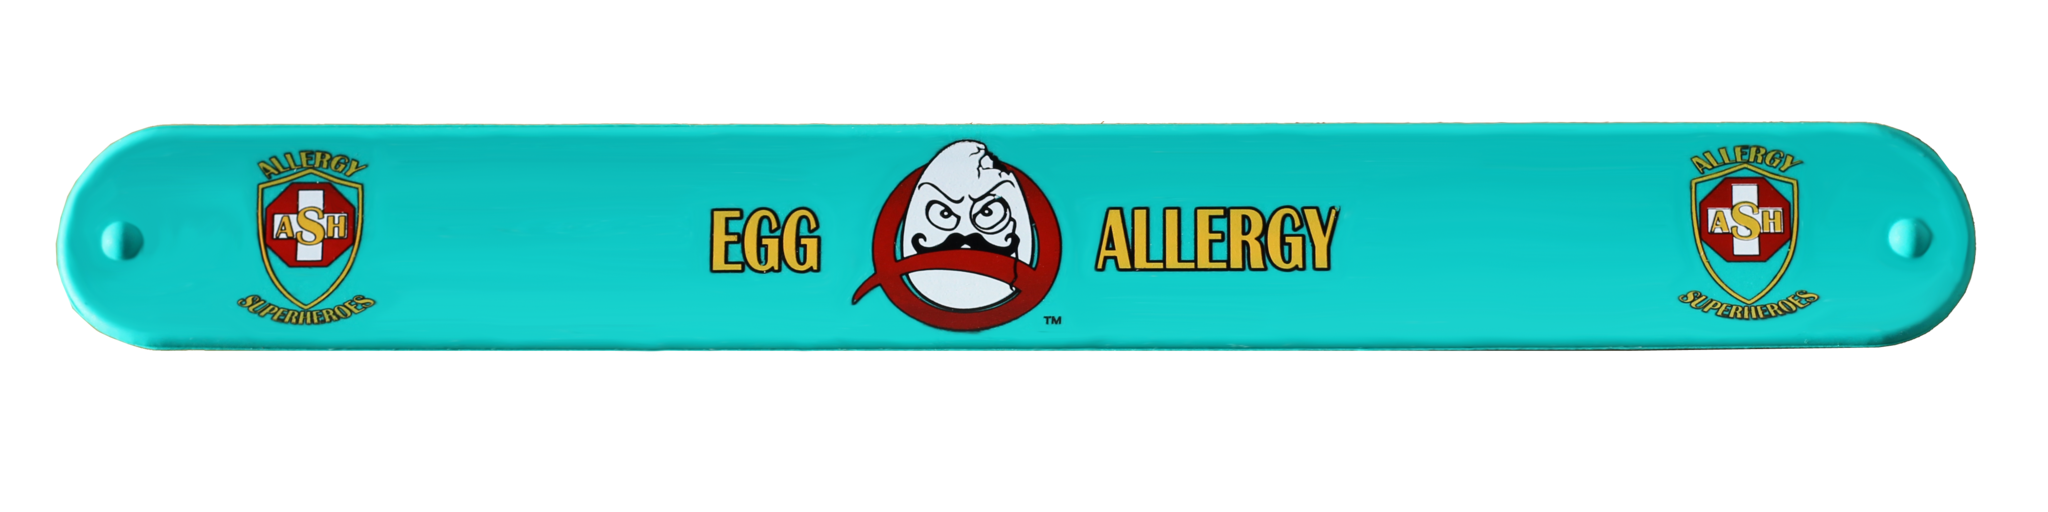 Egg Allergy Superhero Slap Bracelet Allergy Superheroes